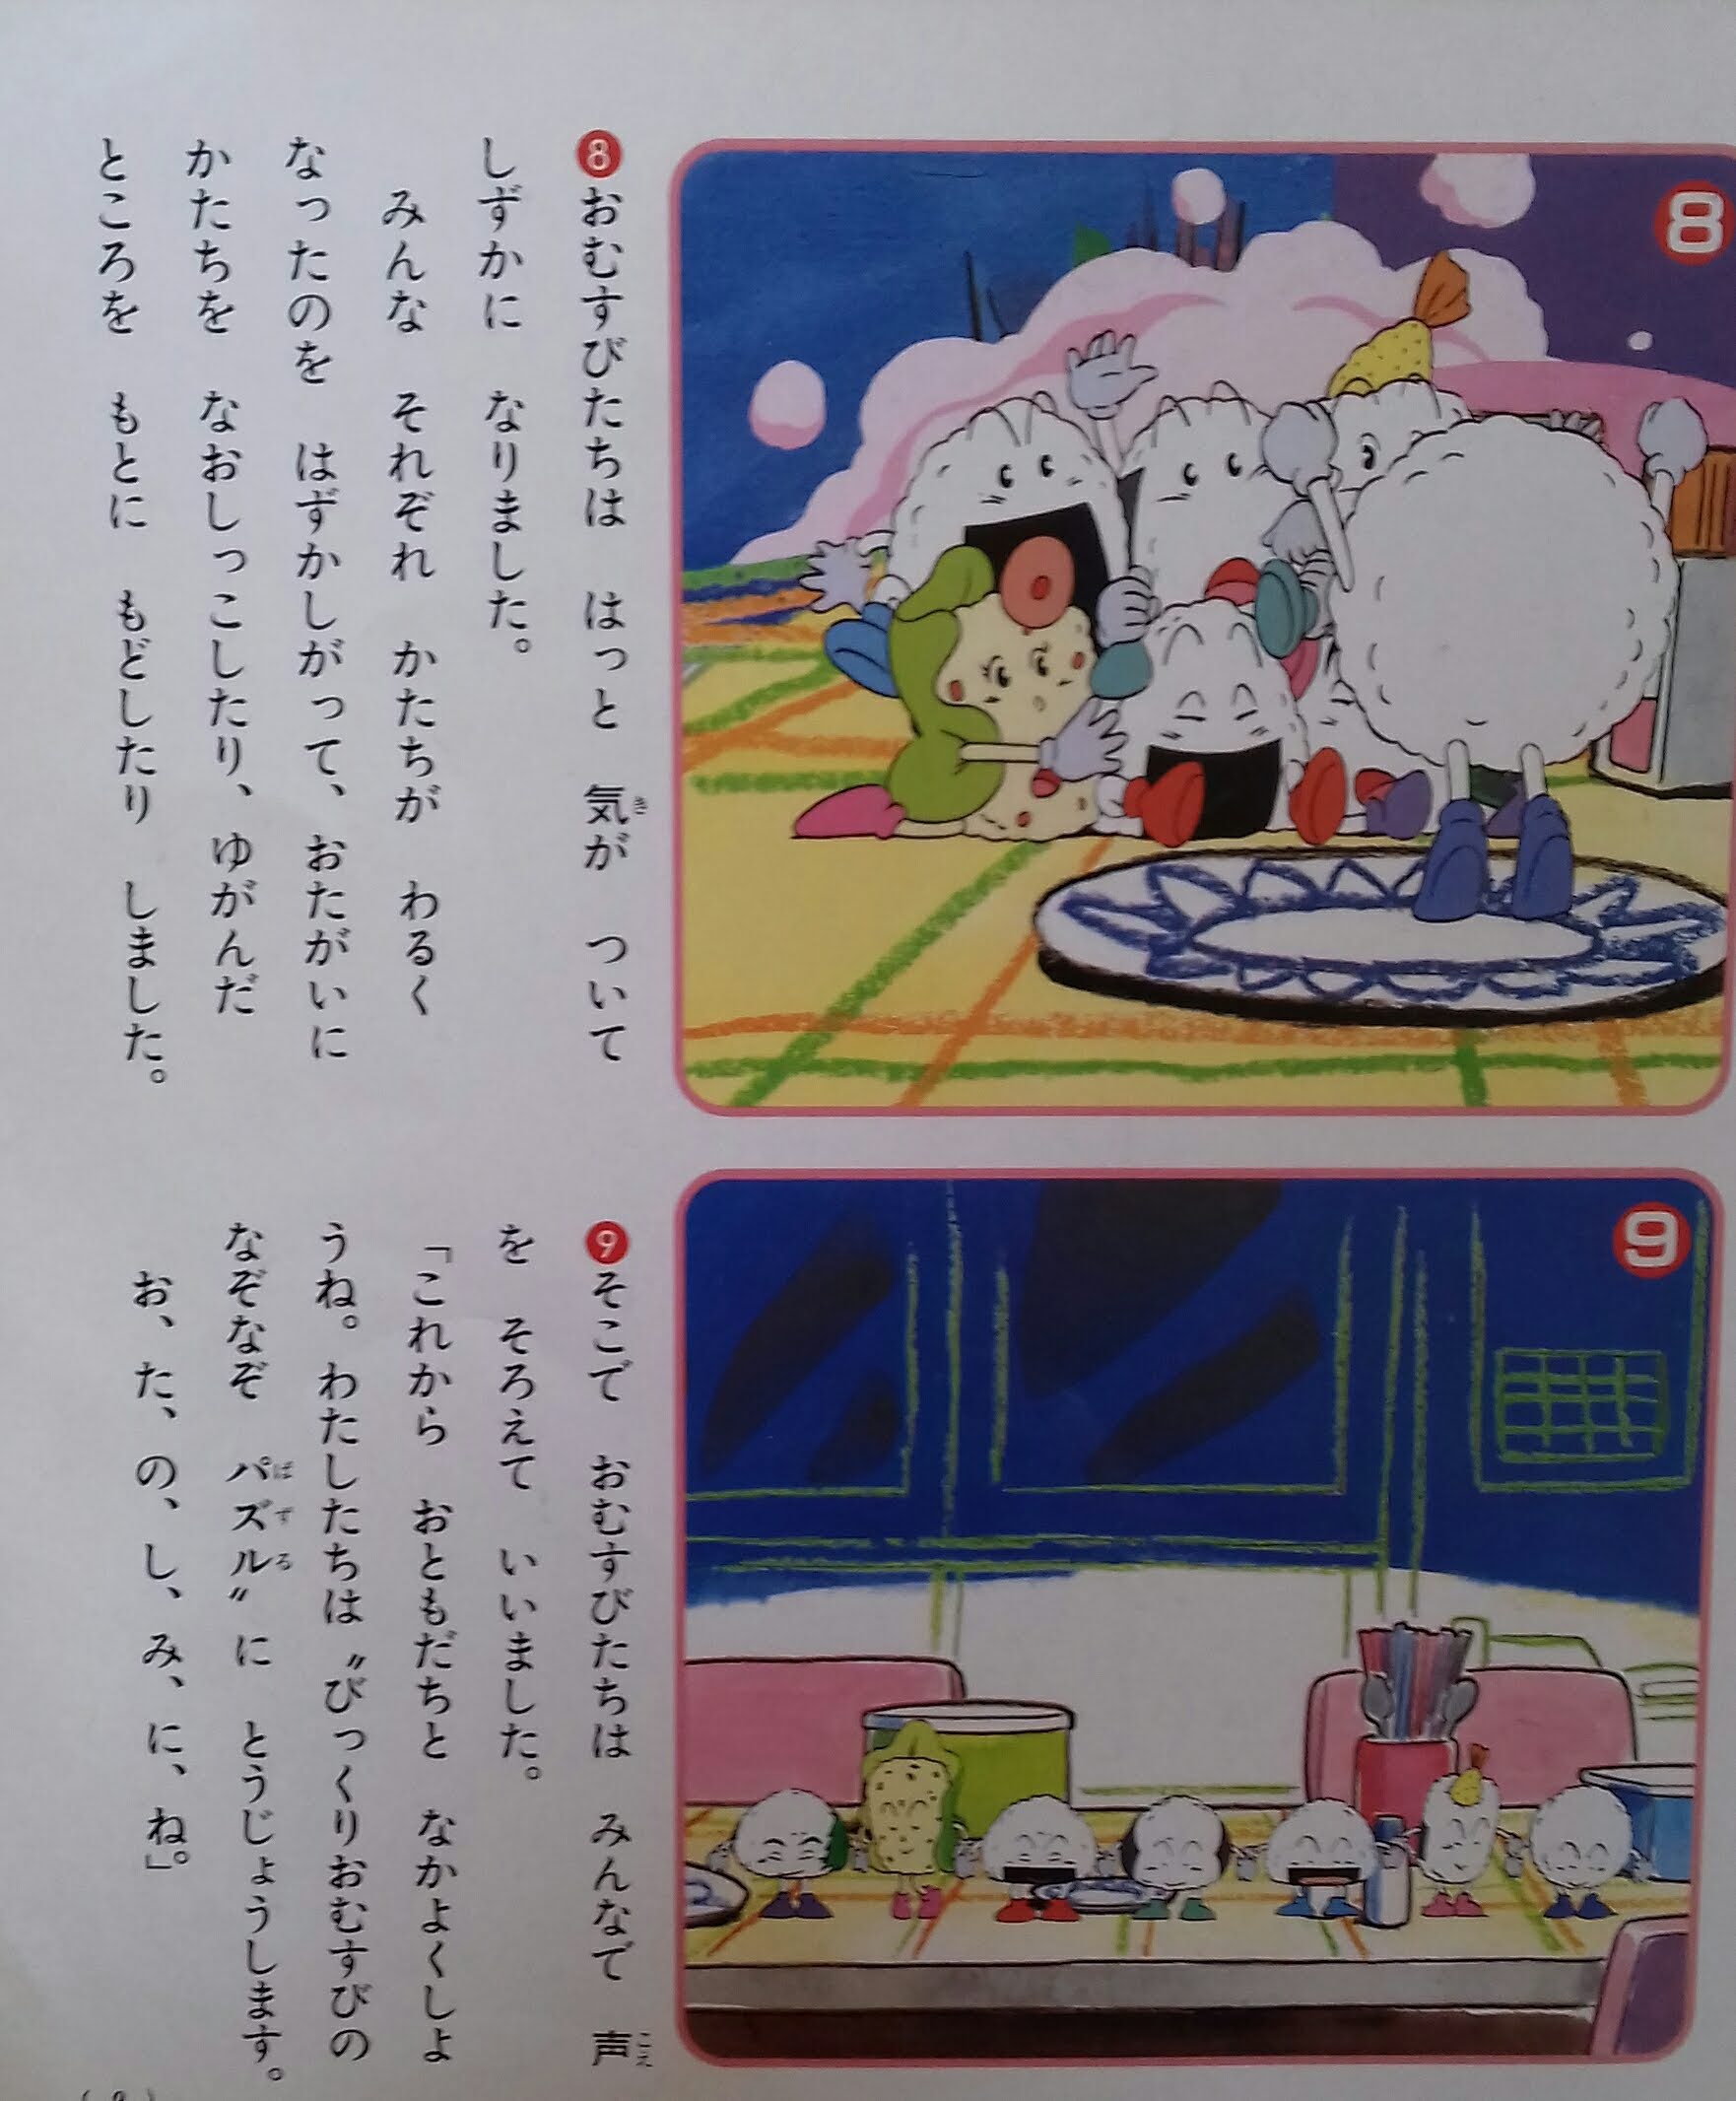 The image of rice balls listening to the white rice ball. All rice balls are get along.